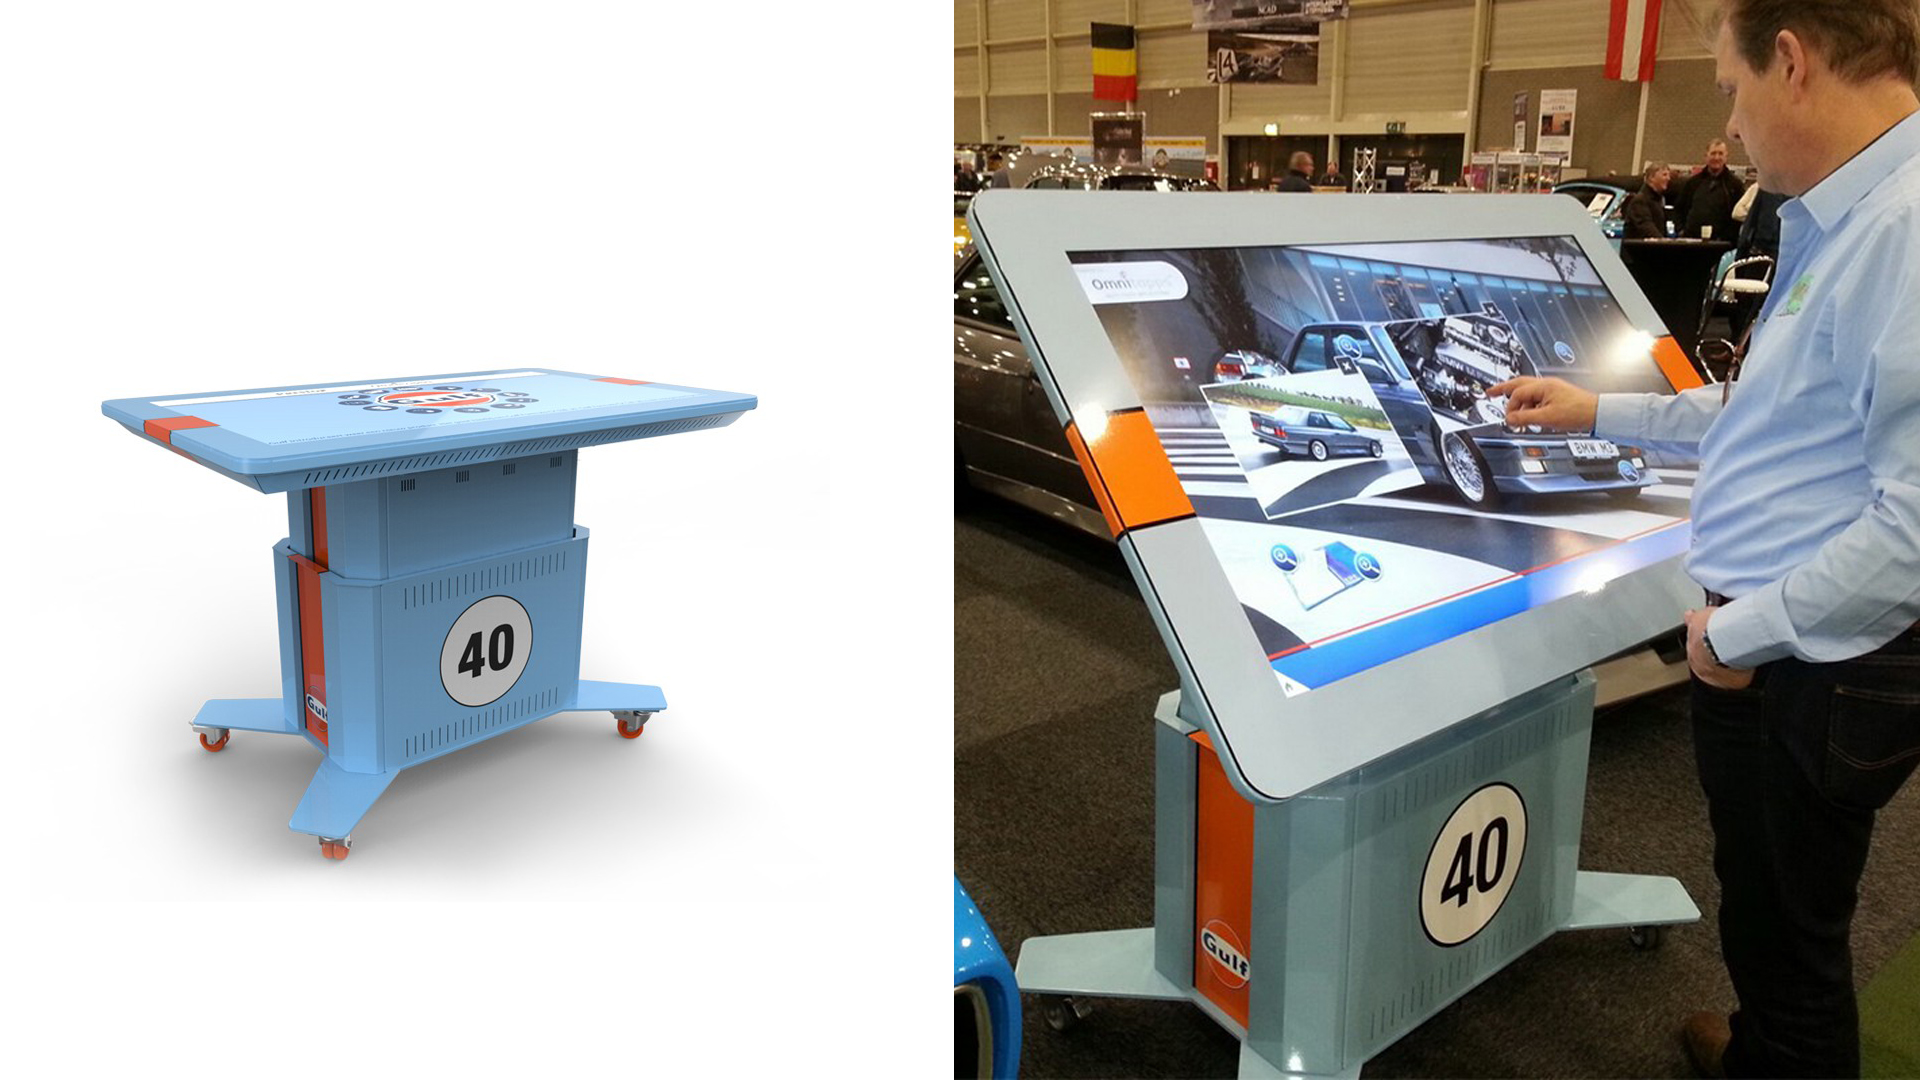 branded multitouch table and lift Gulf